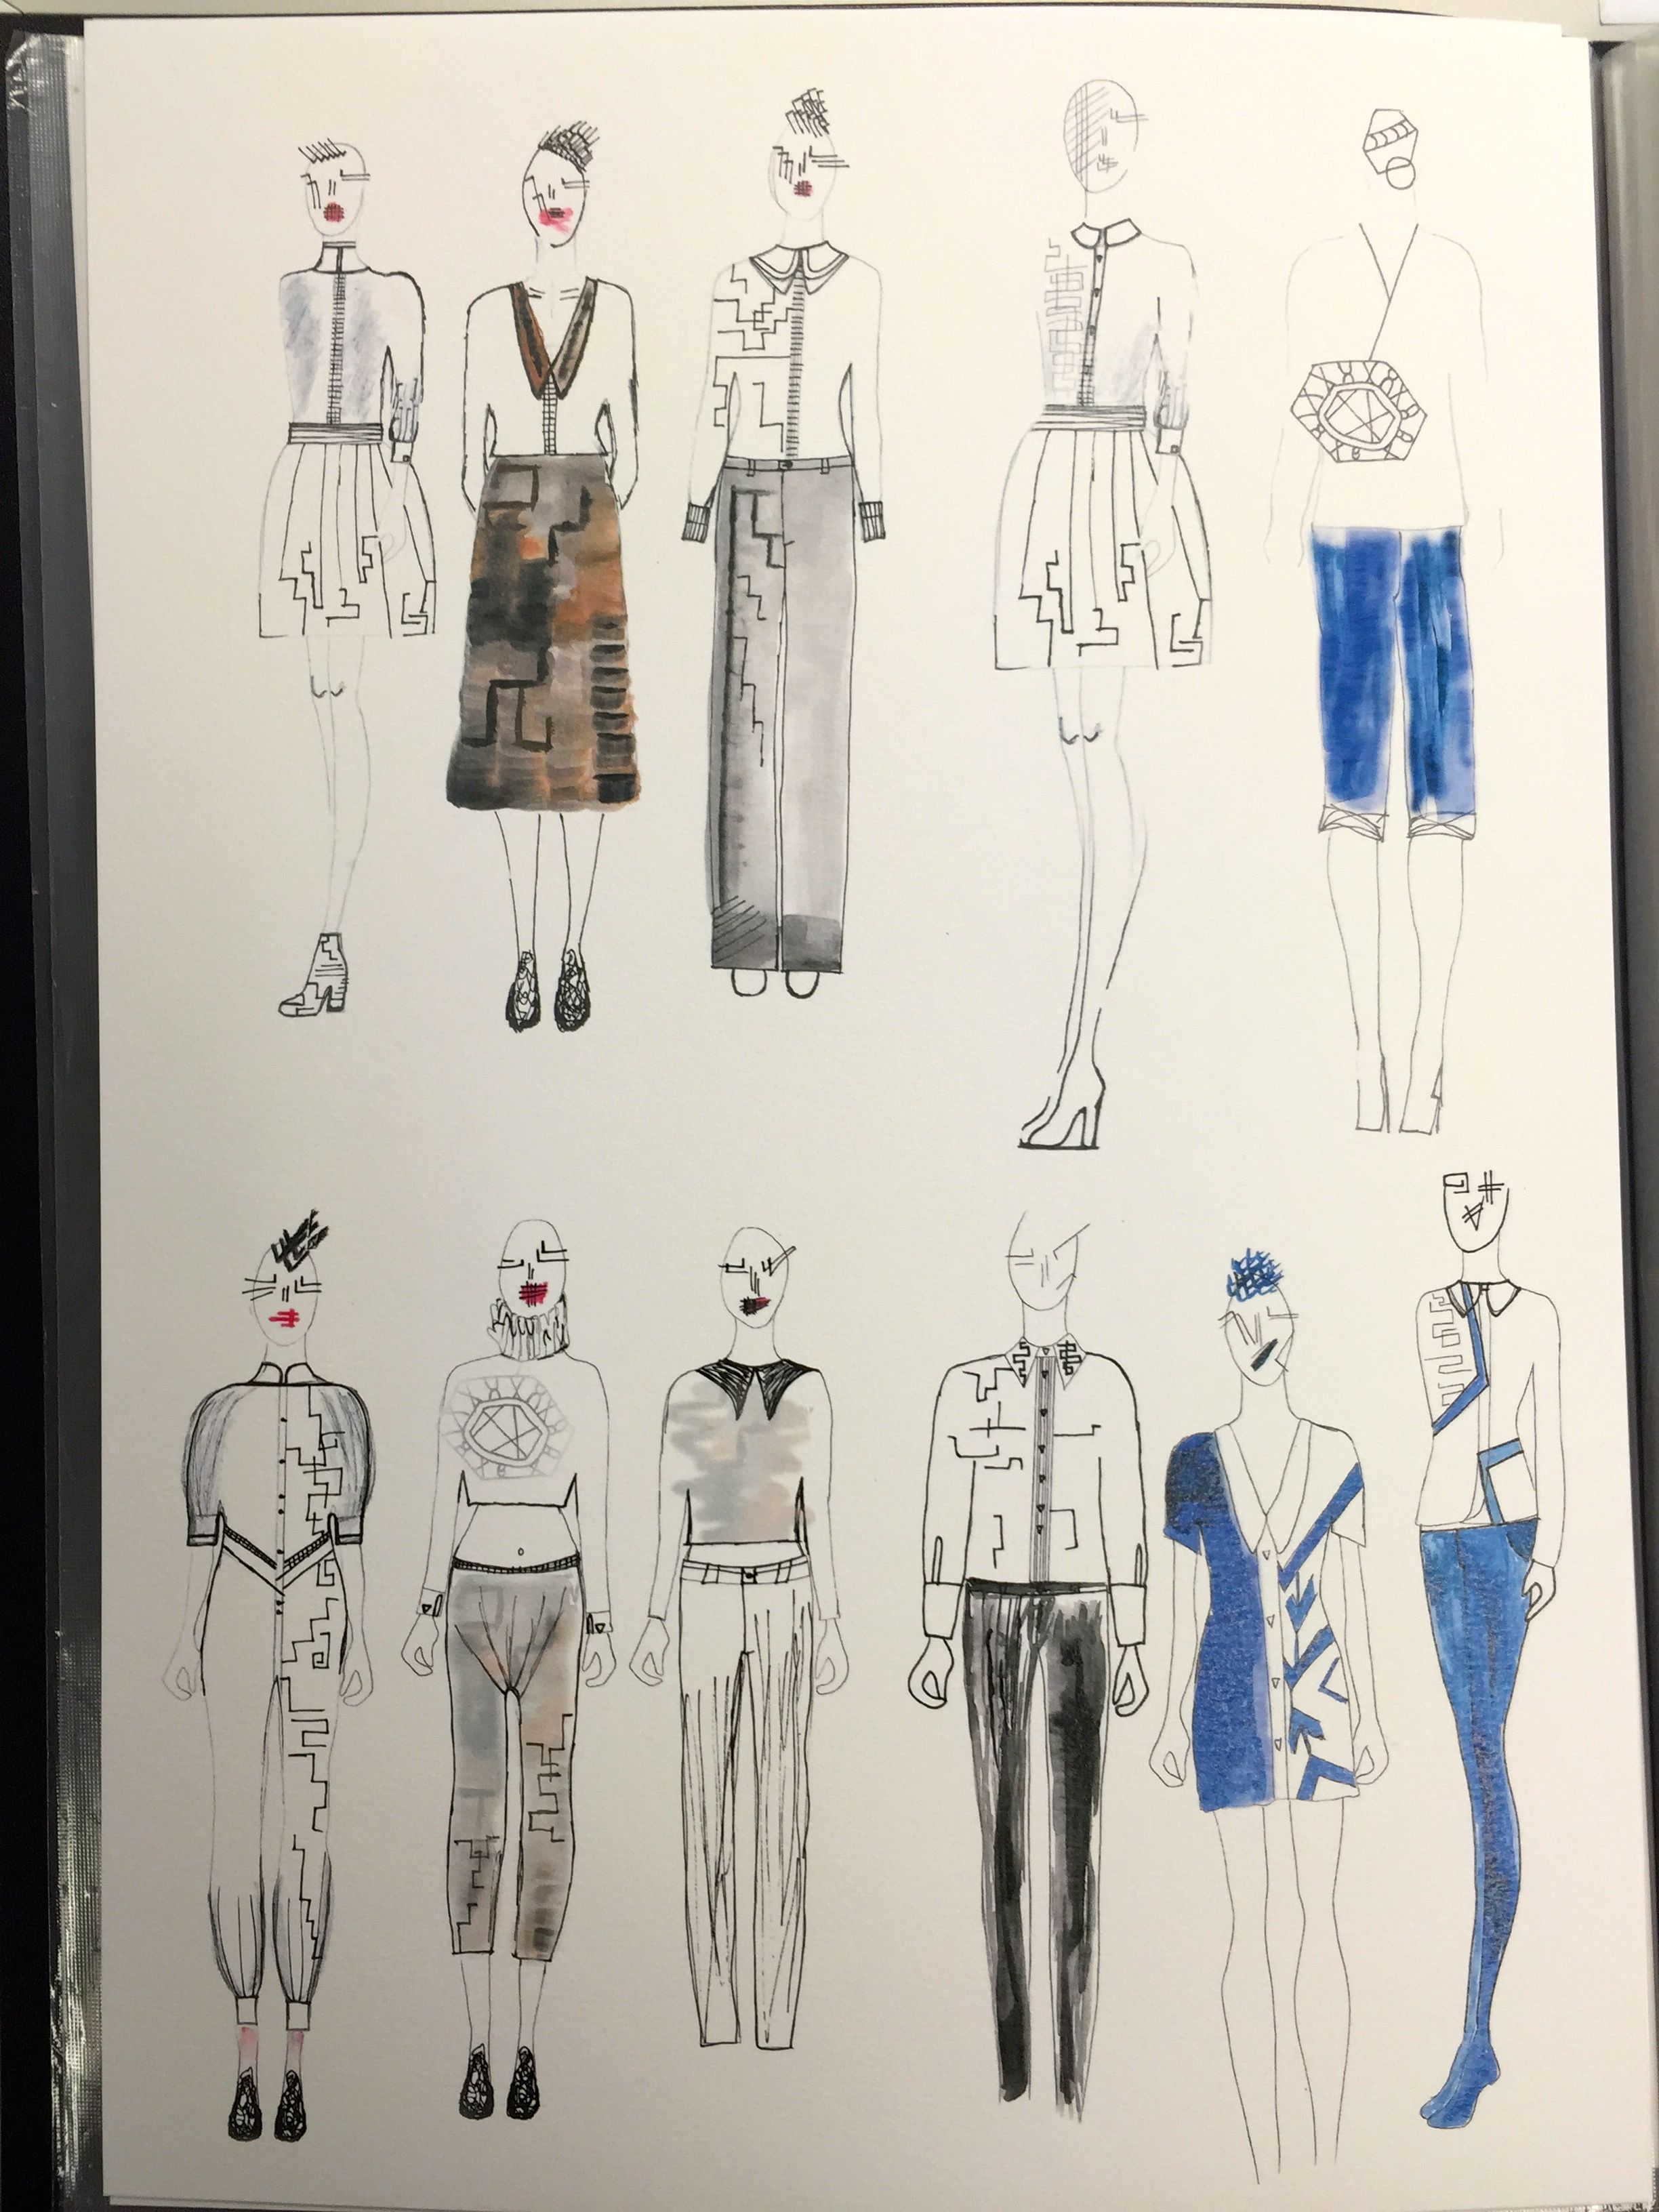 Development Line Up From First Semester Sara I Love This Emerging Style As It Challenges The Perceptions London College Of Fashion Cool Style Fashion Design